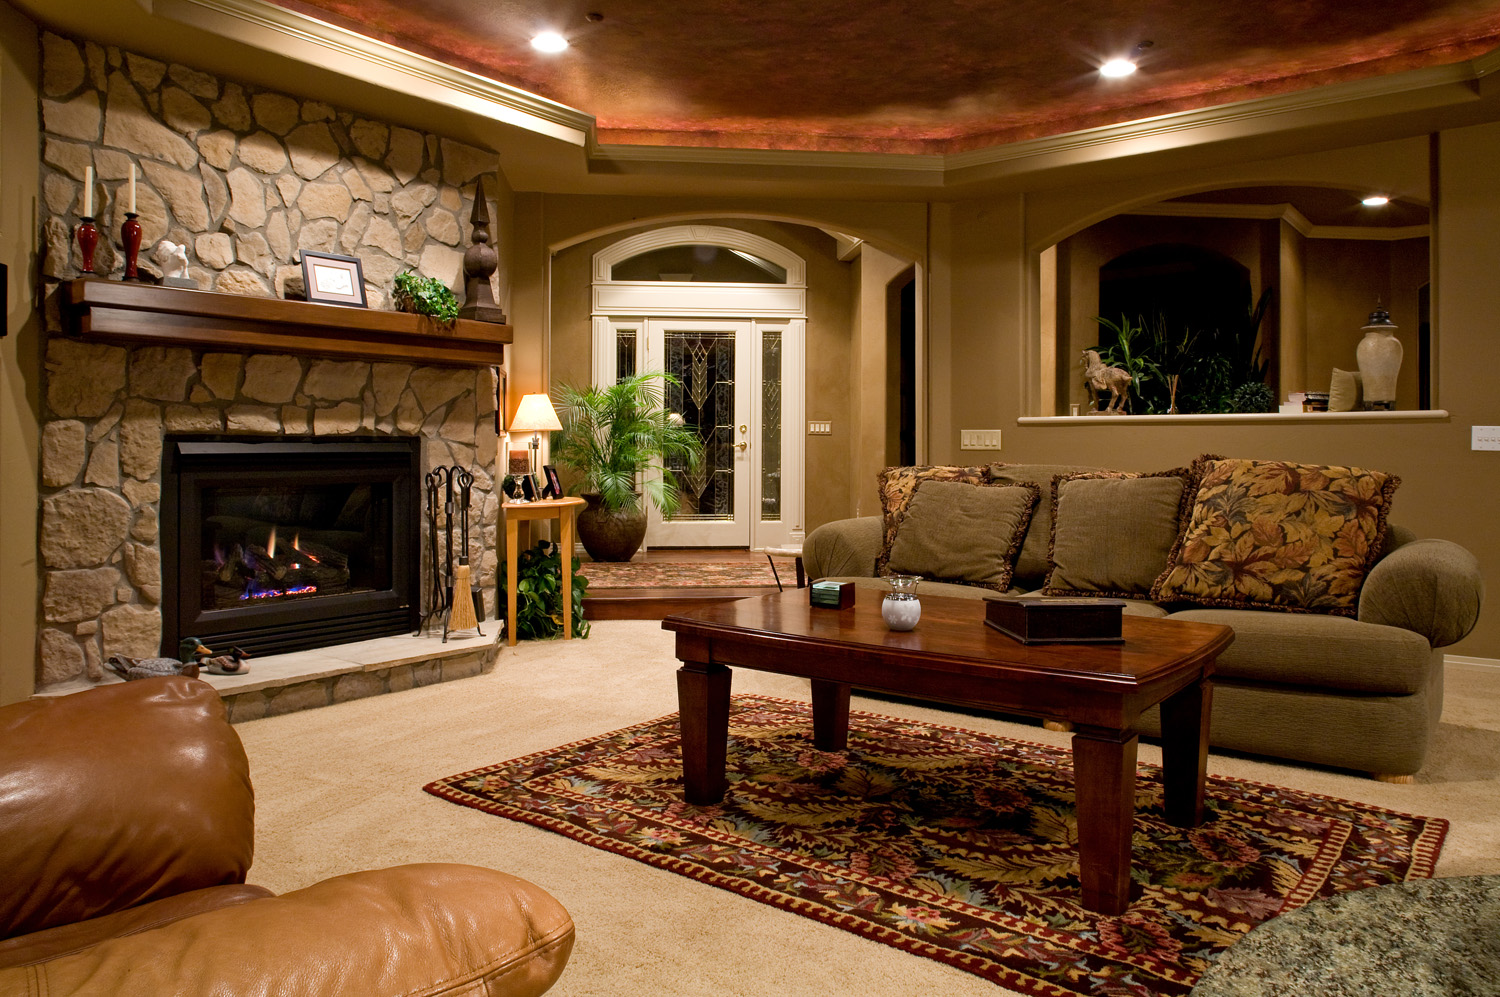 Basement renovation specialists for edmonton st albert - Basement makeover ideas ...